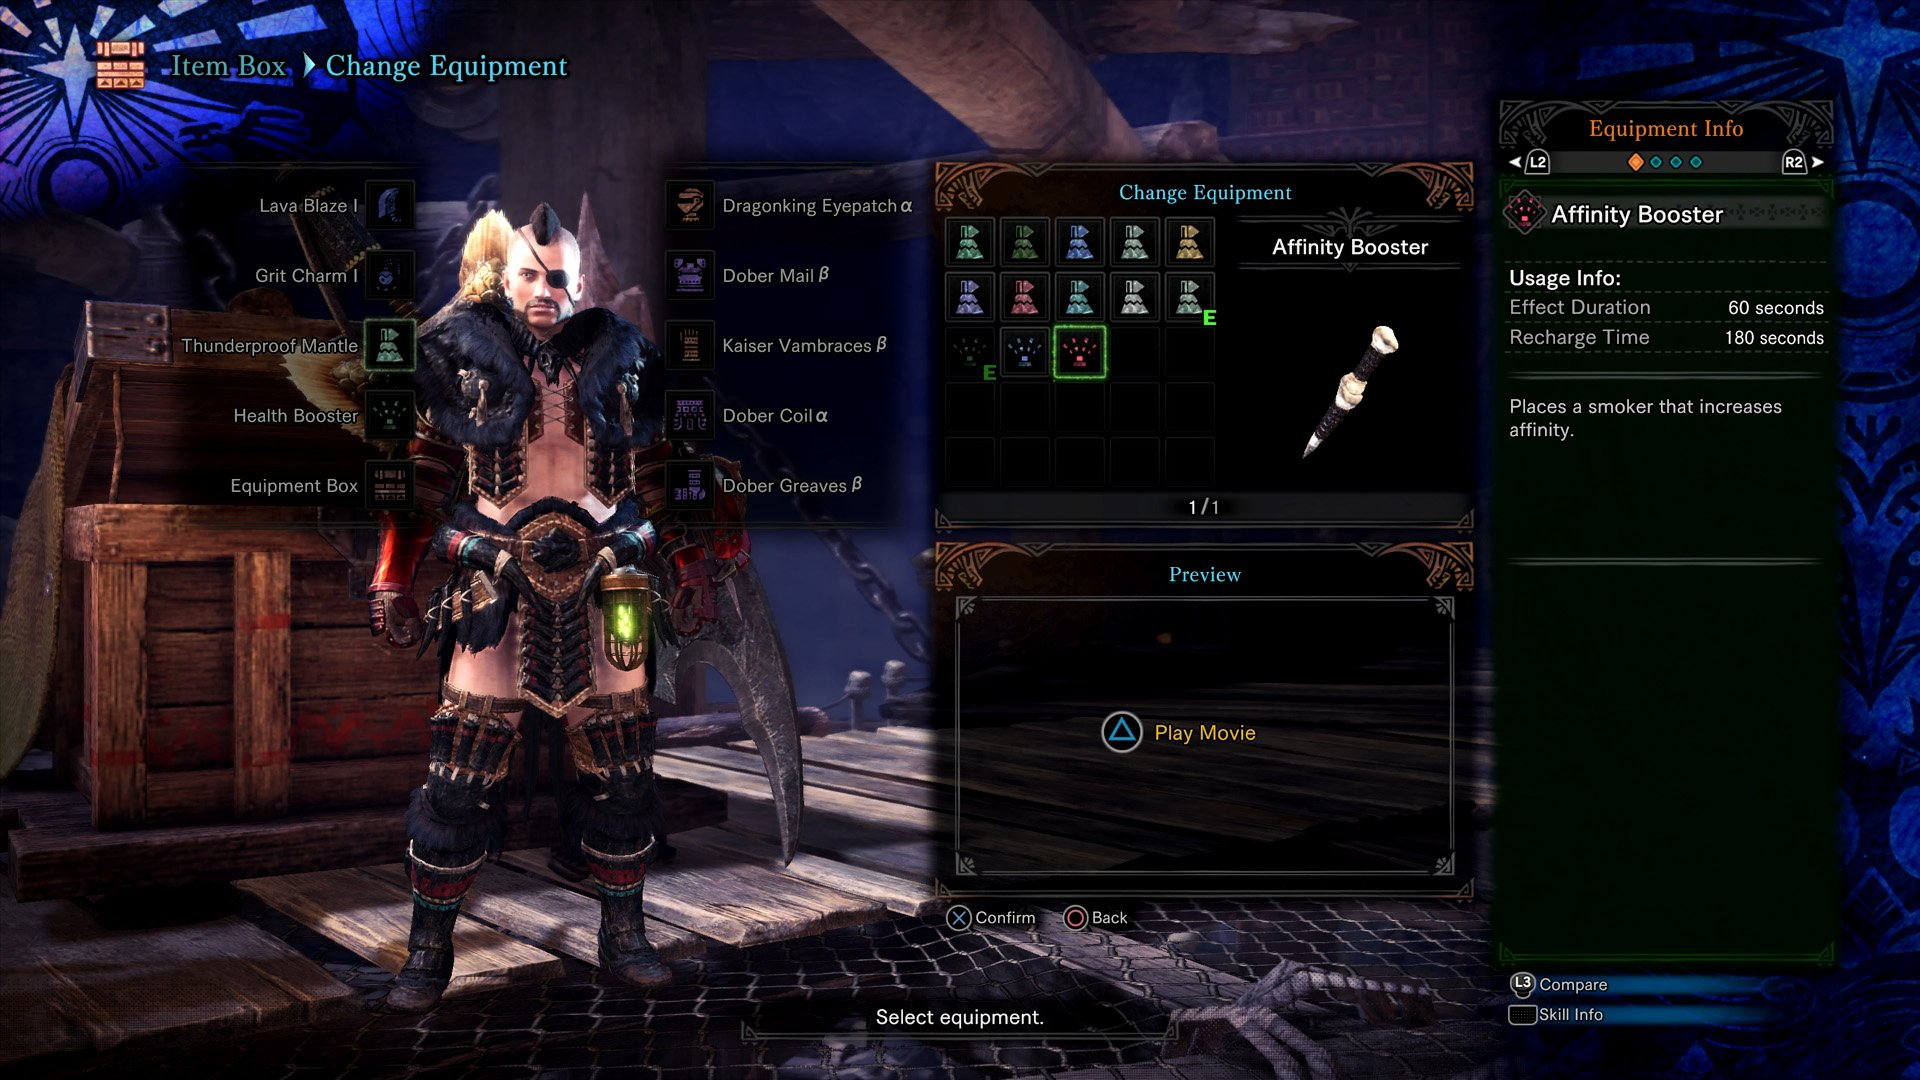 Affinity Booster Monster Hunter World